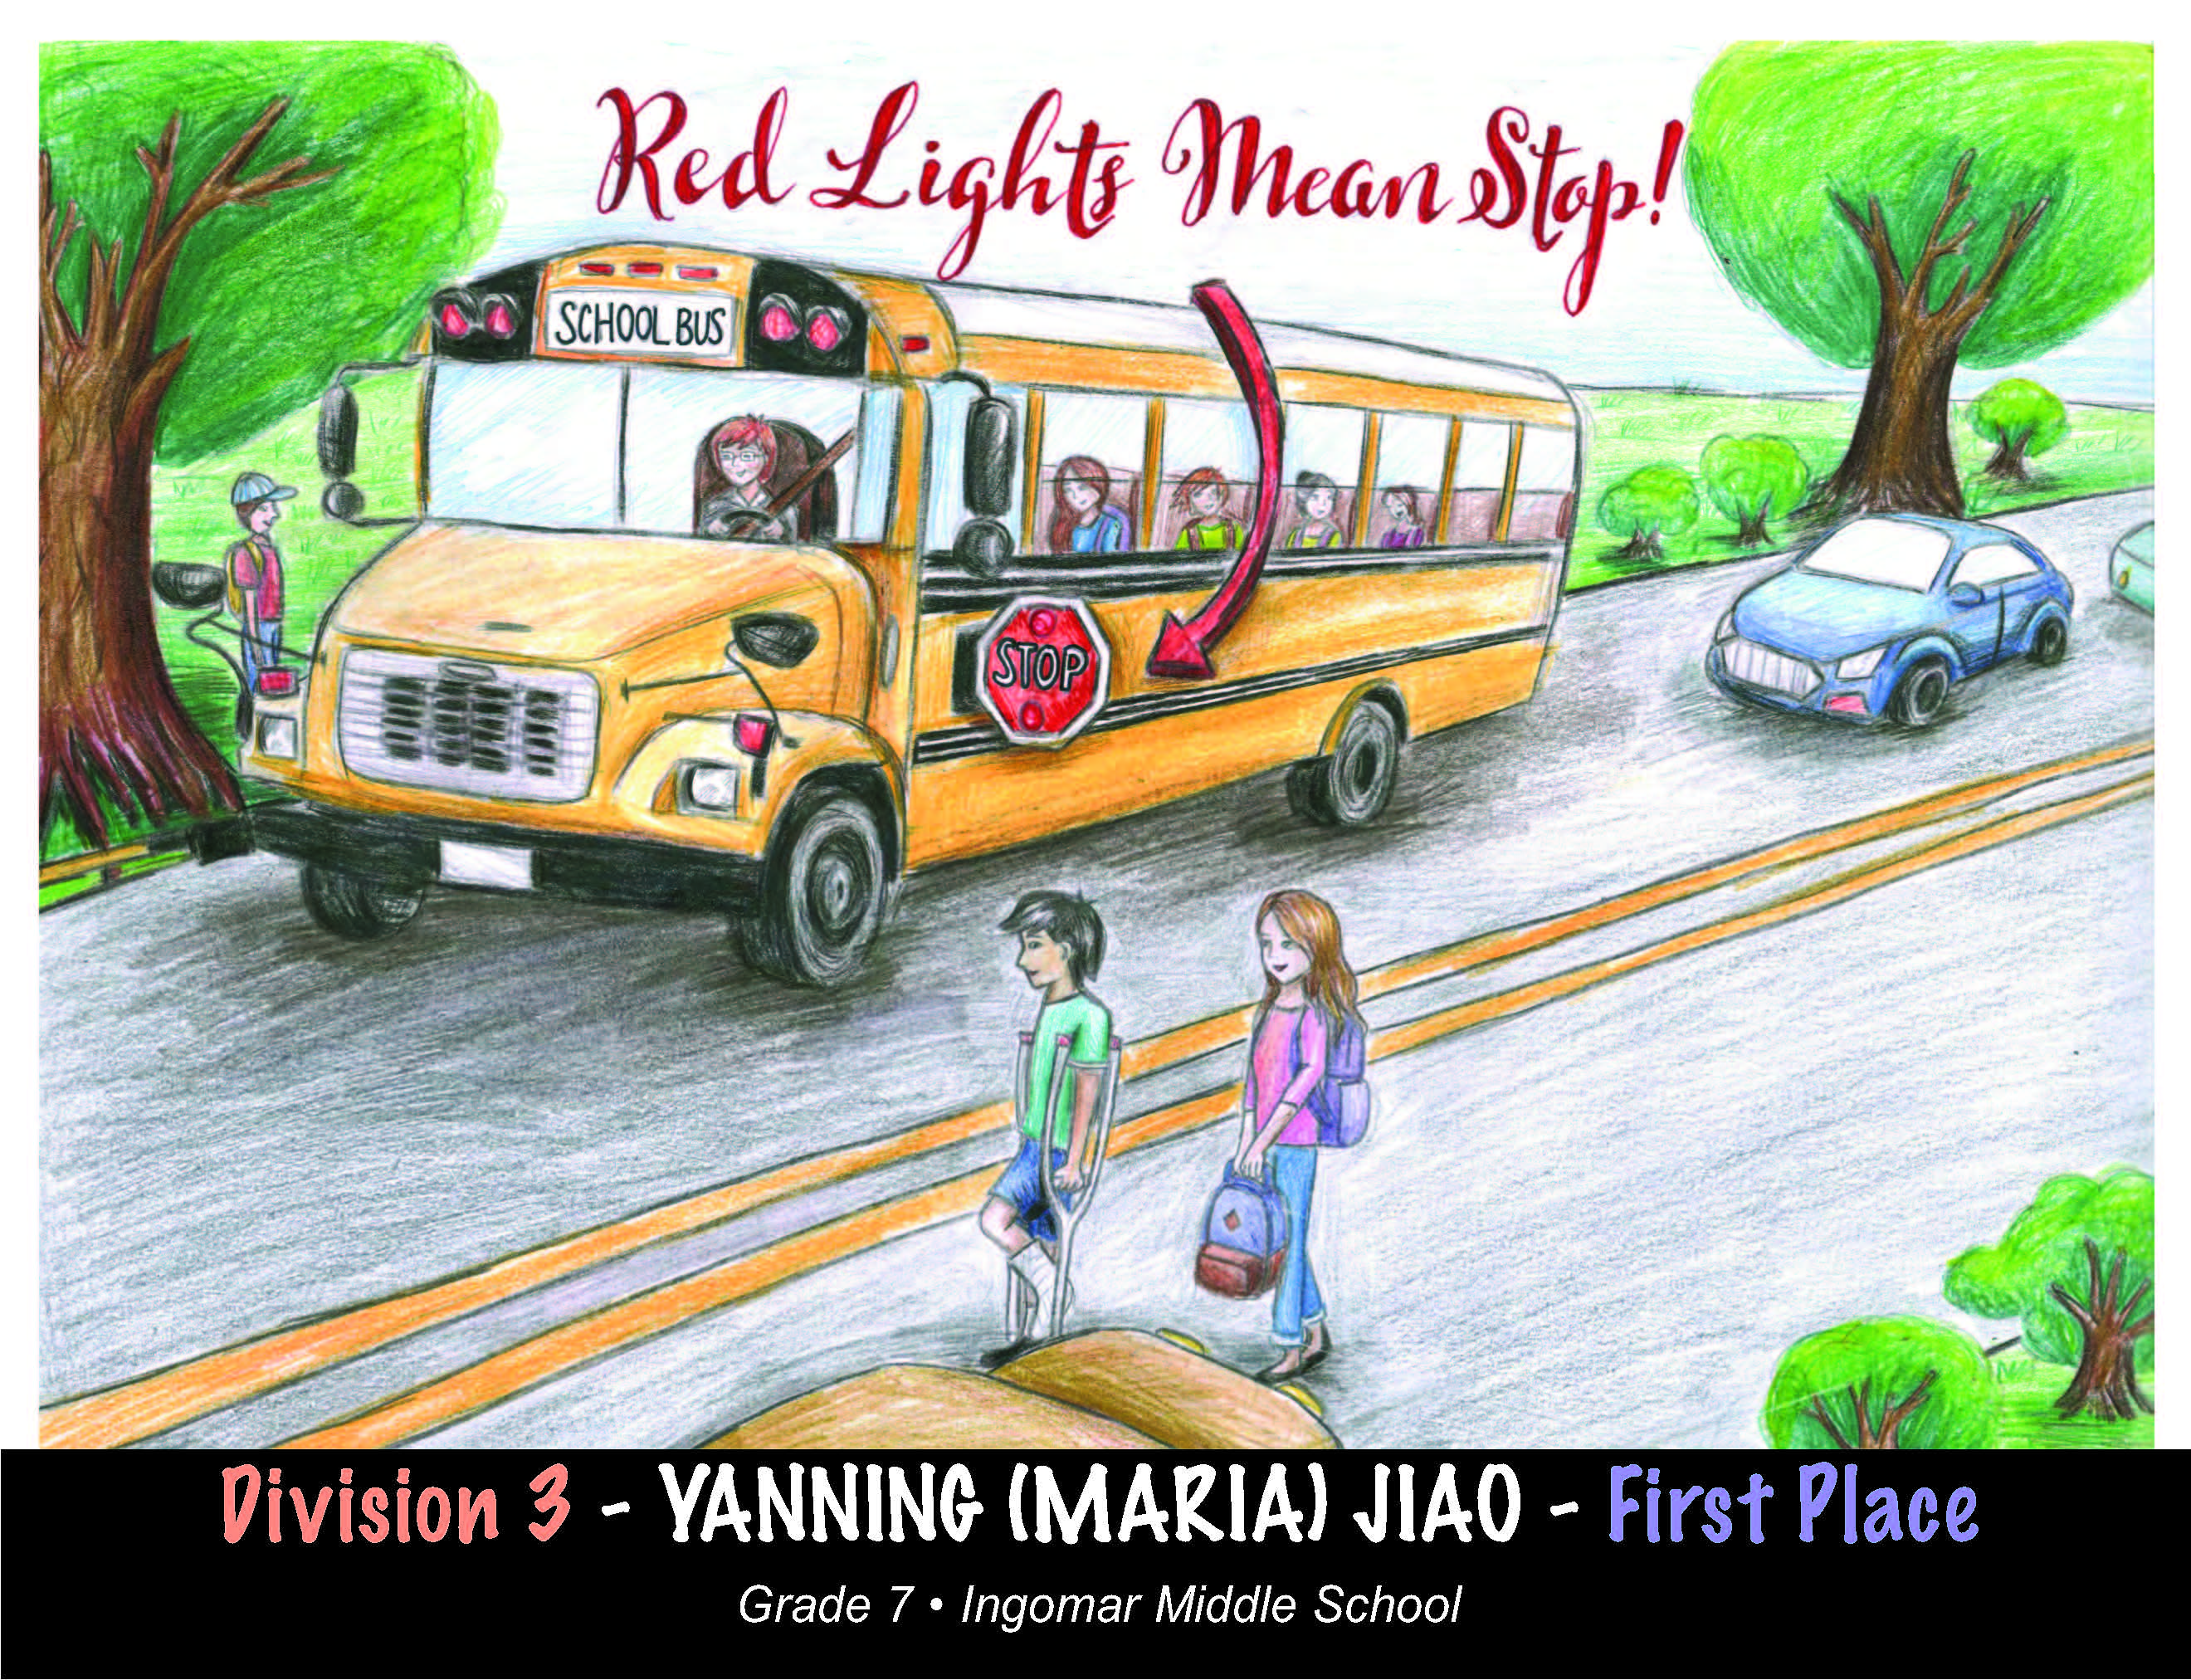 School bus safety poster Division 3 winner